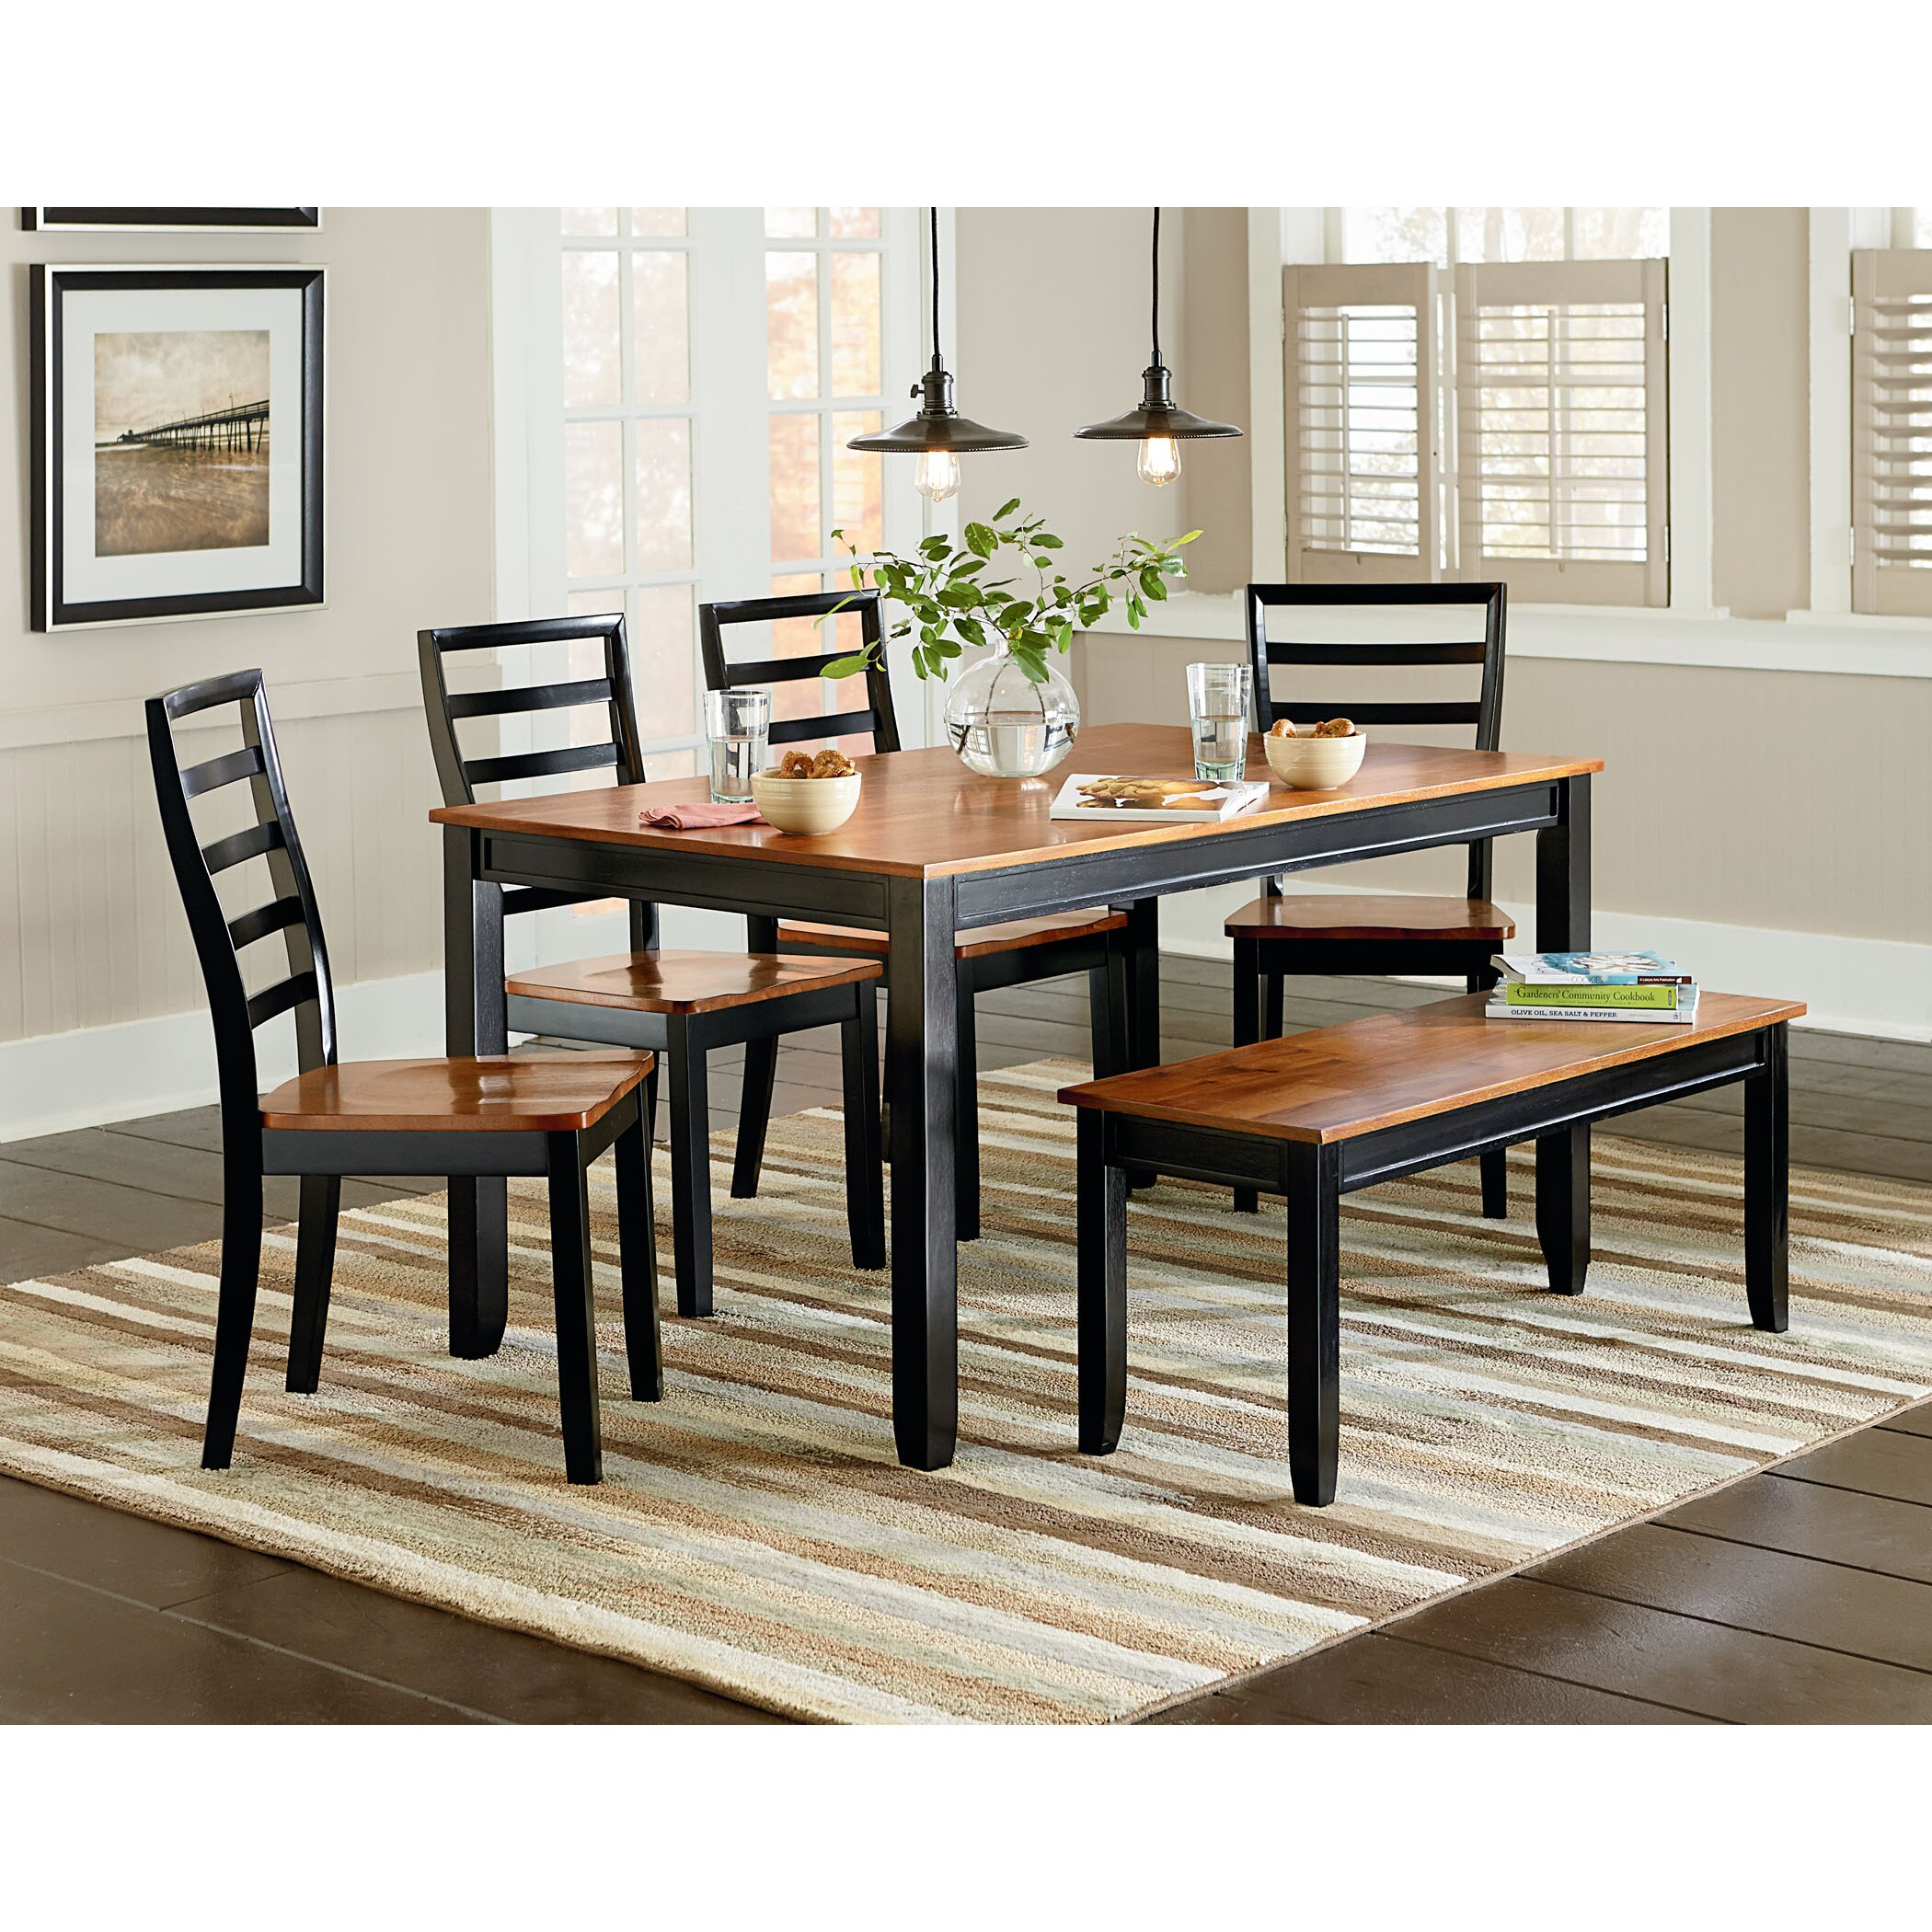 Standard Furniture Pendleton 5 Piece Dining Room Set In: Standard Furniture Lexford 5 Piece Dining Set & Reviews